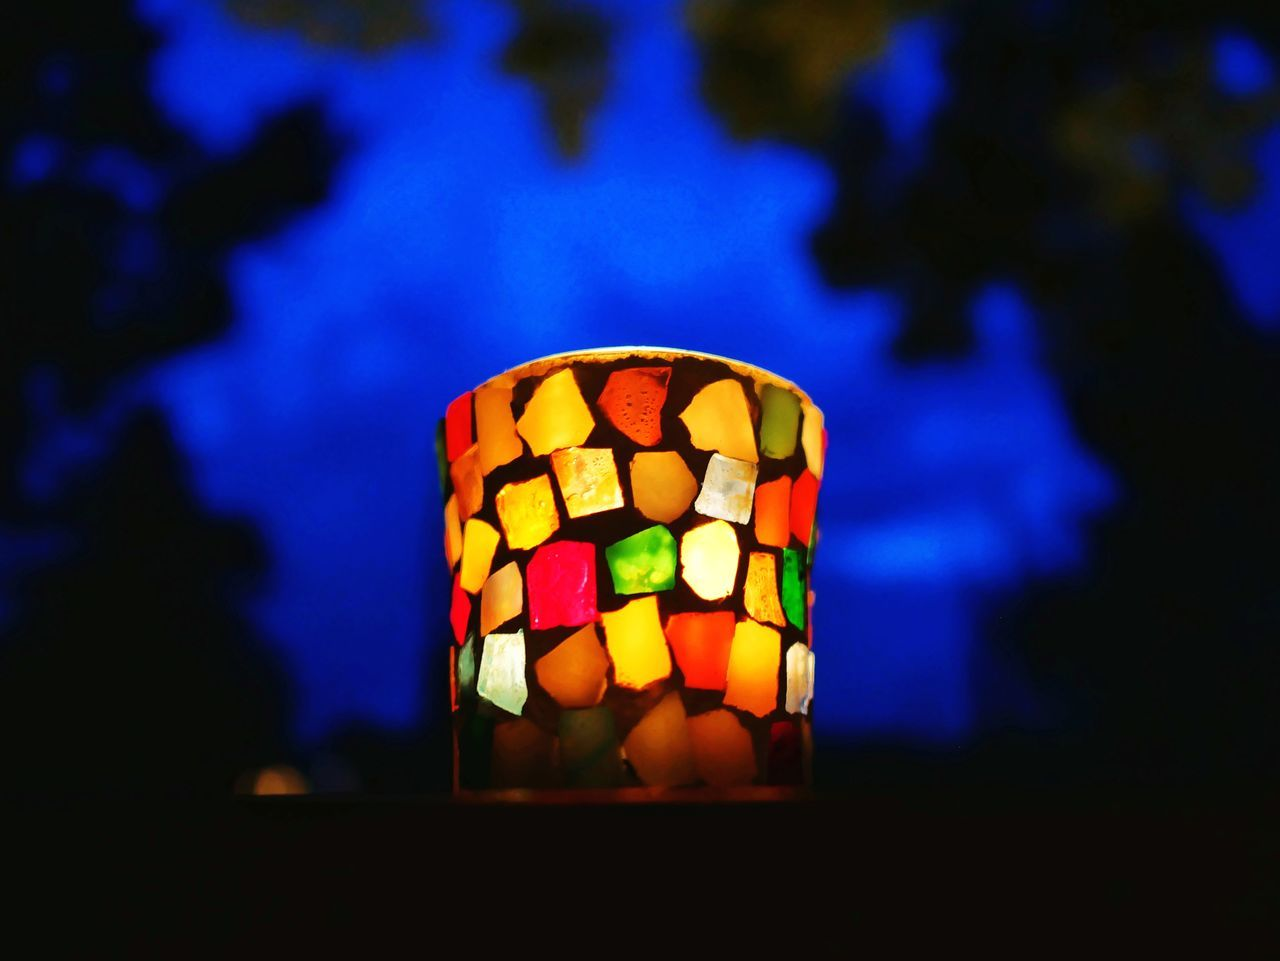 Decorated Candle At Dusk